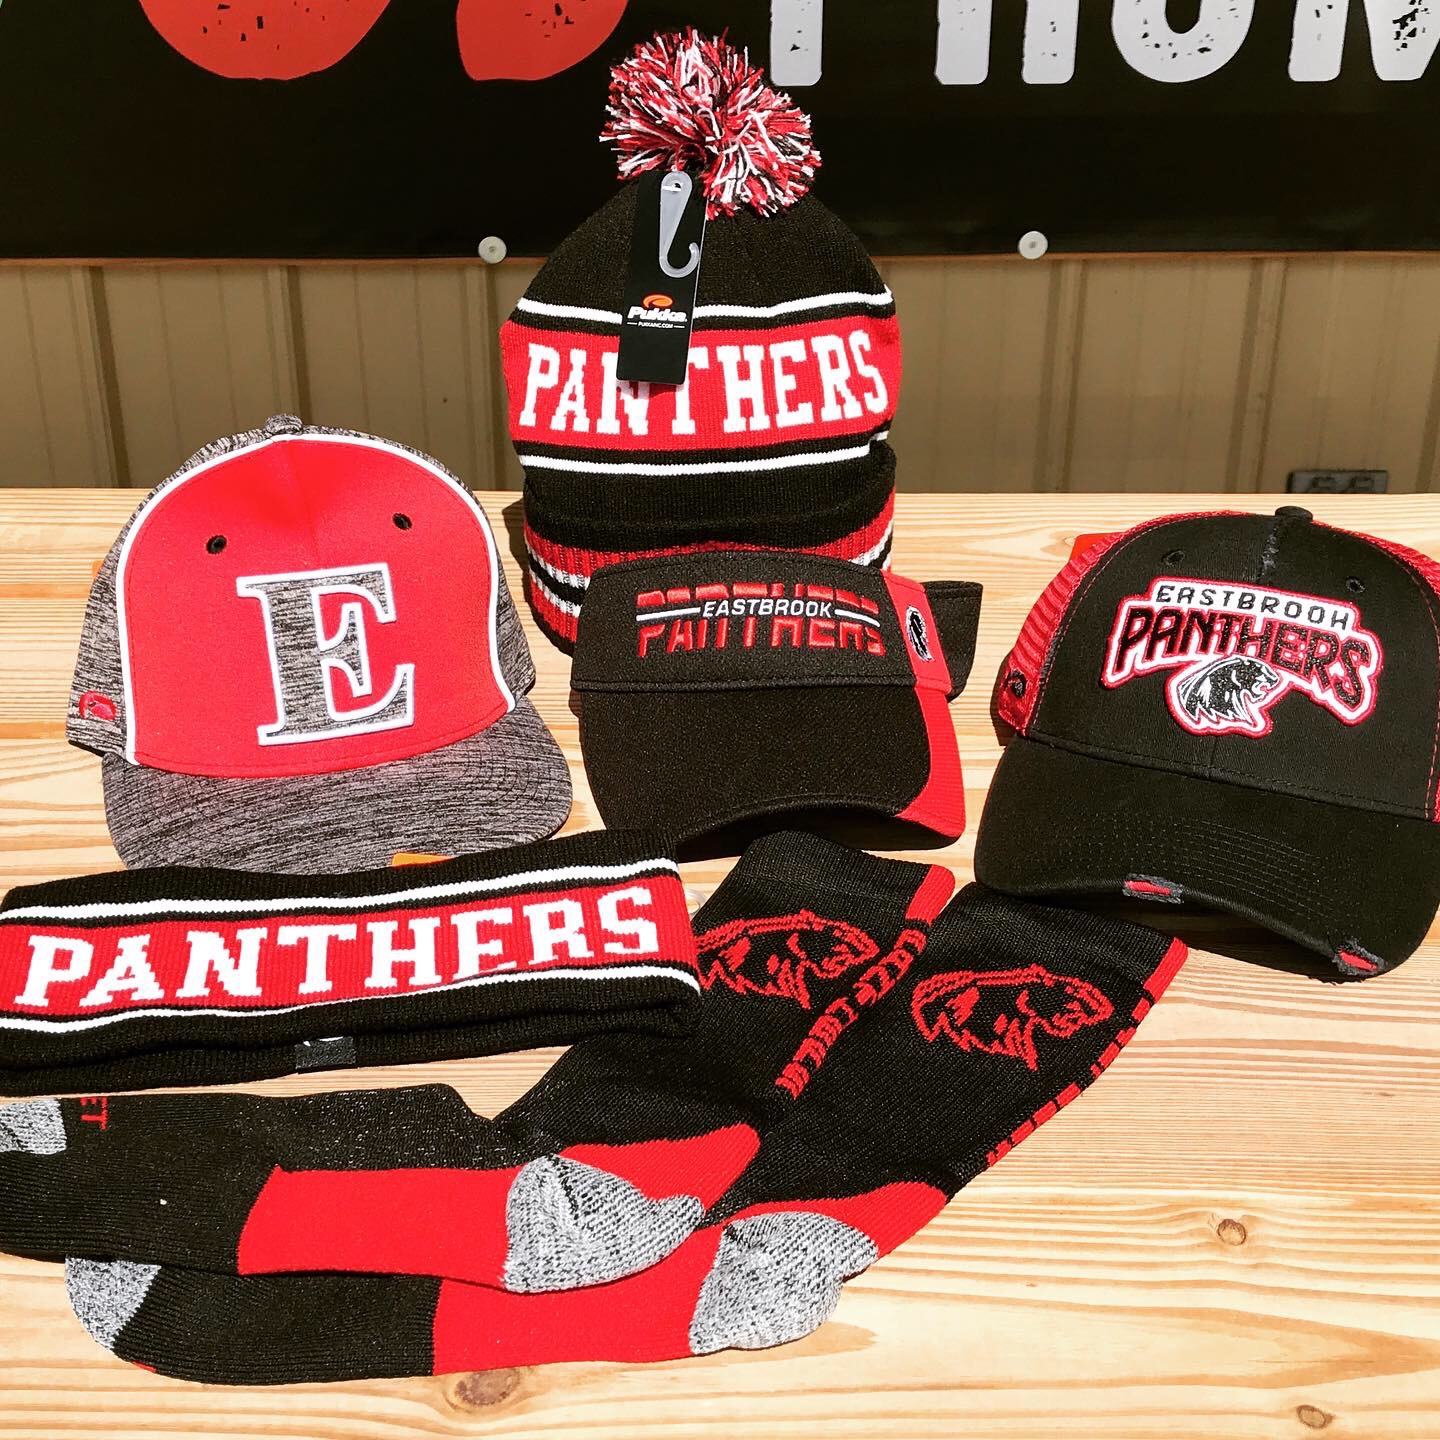 Stay Warm & Represent the Panthers